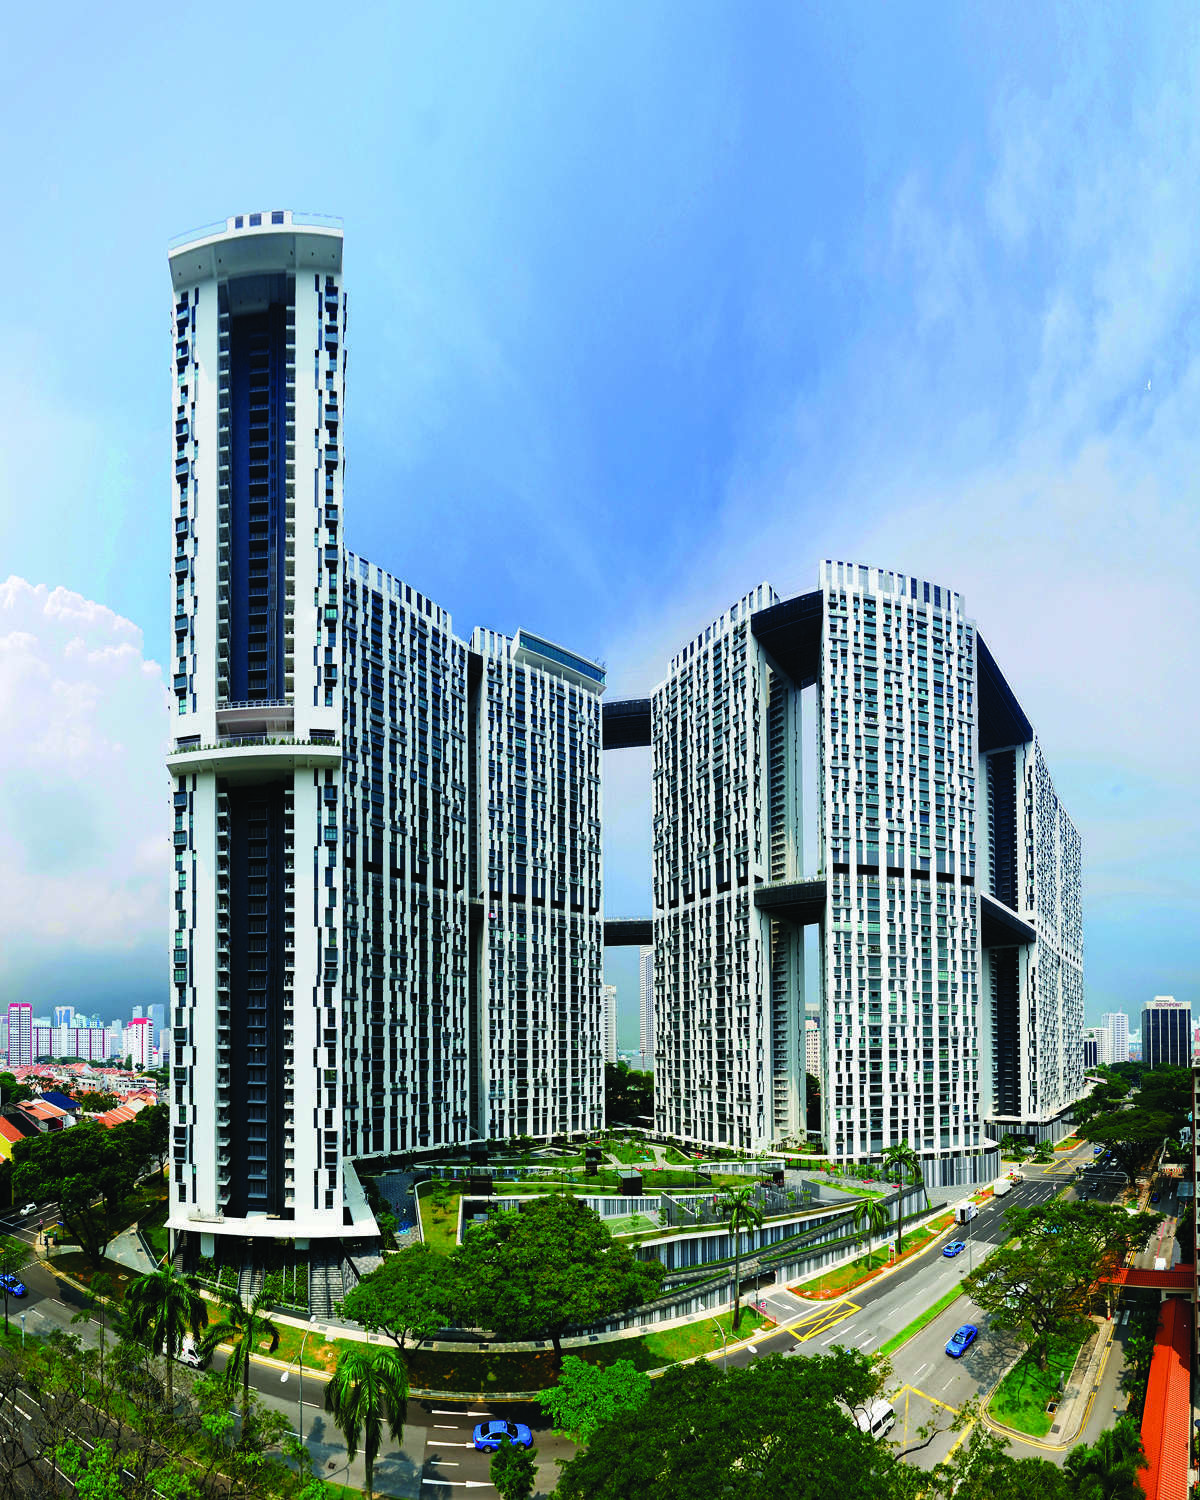 The Pinnacle@Duxton is one of Singapore's most striking architectural landmarks and represents a major innovation in public housing in the country